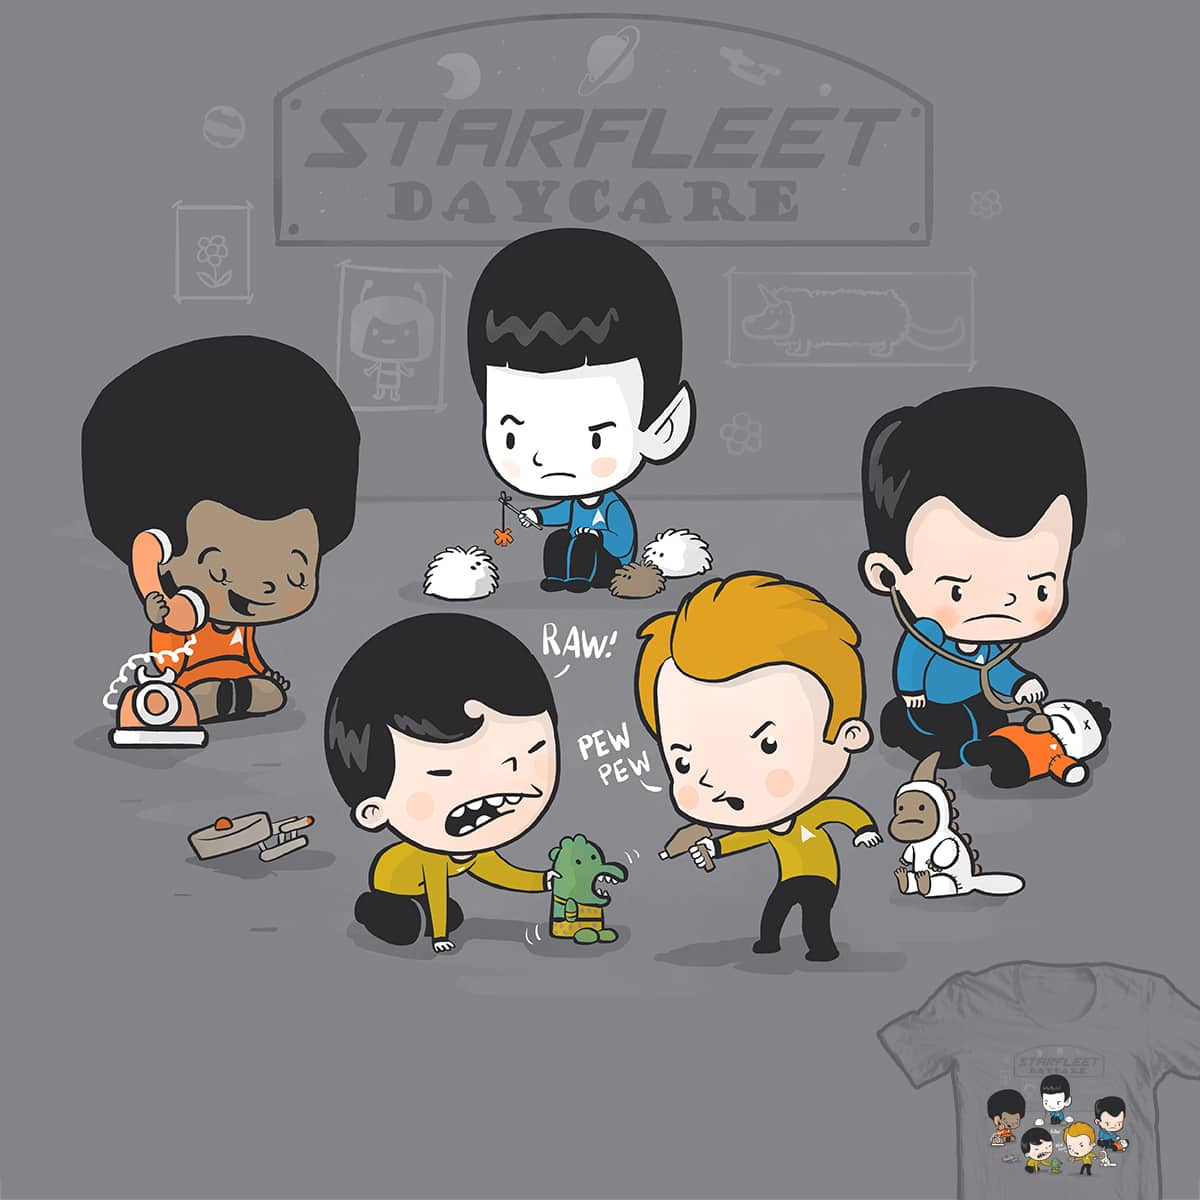 Starfleet Daycare by queenmob on Threadless